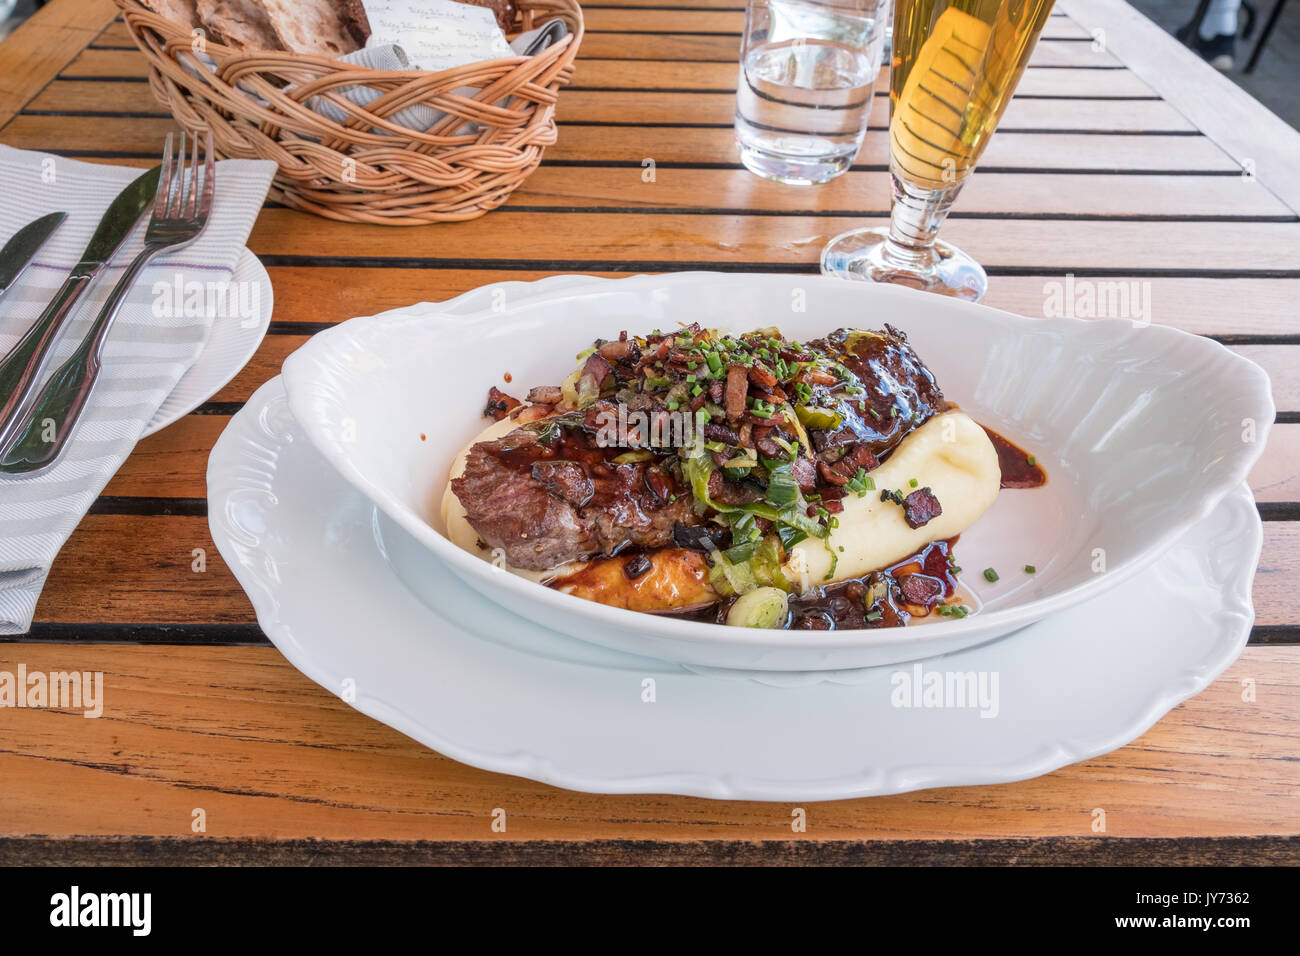 Shoemaker's box is a traditional Swedish dish consisting of beef served on mashed potatoes with gravy and garnished with diced bacon and chopped piece - Stock Image